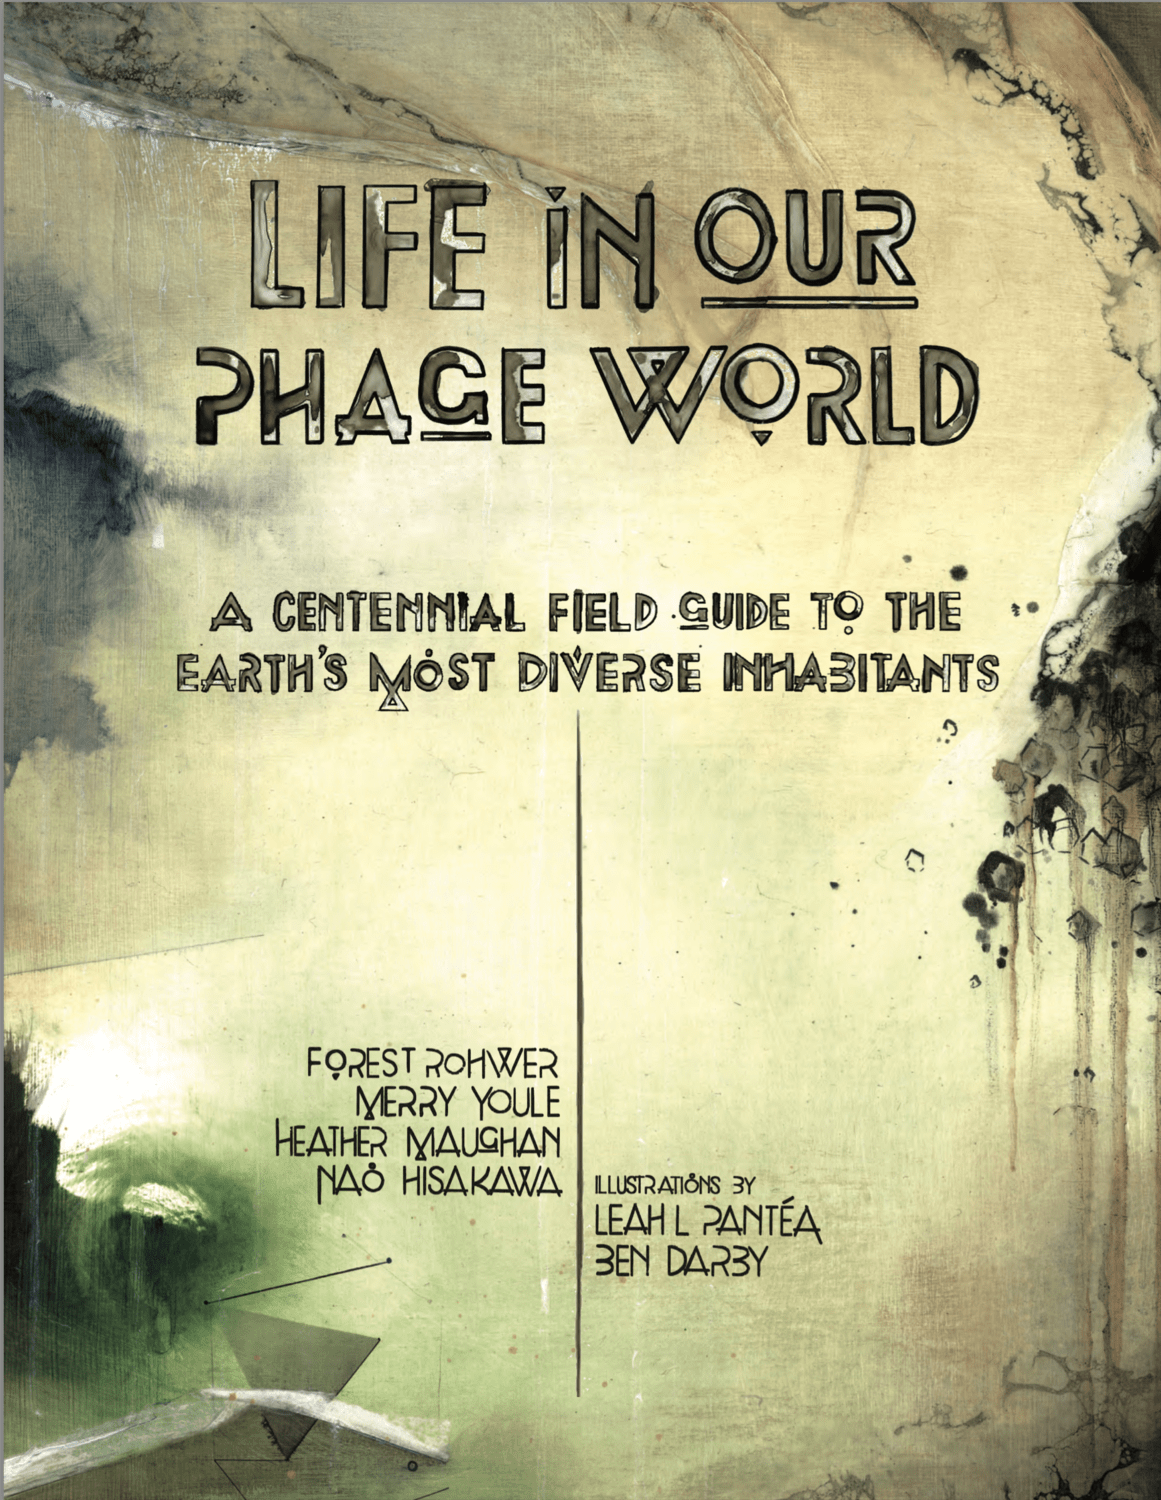 1. Life in our phage world: a centennial field guide to the Earth's most diverse inhabitants